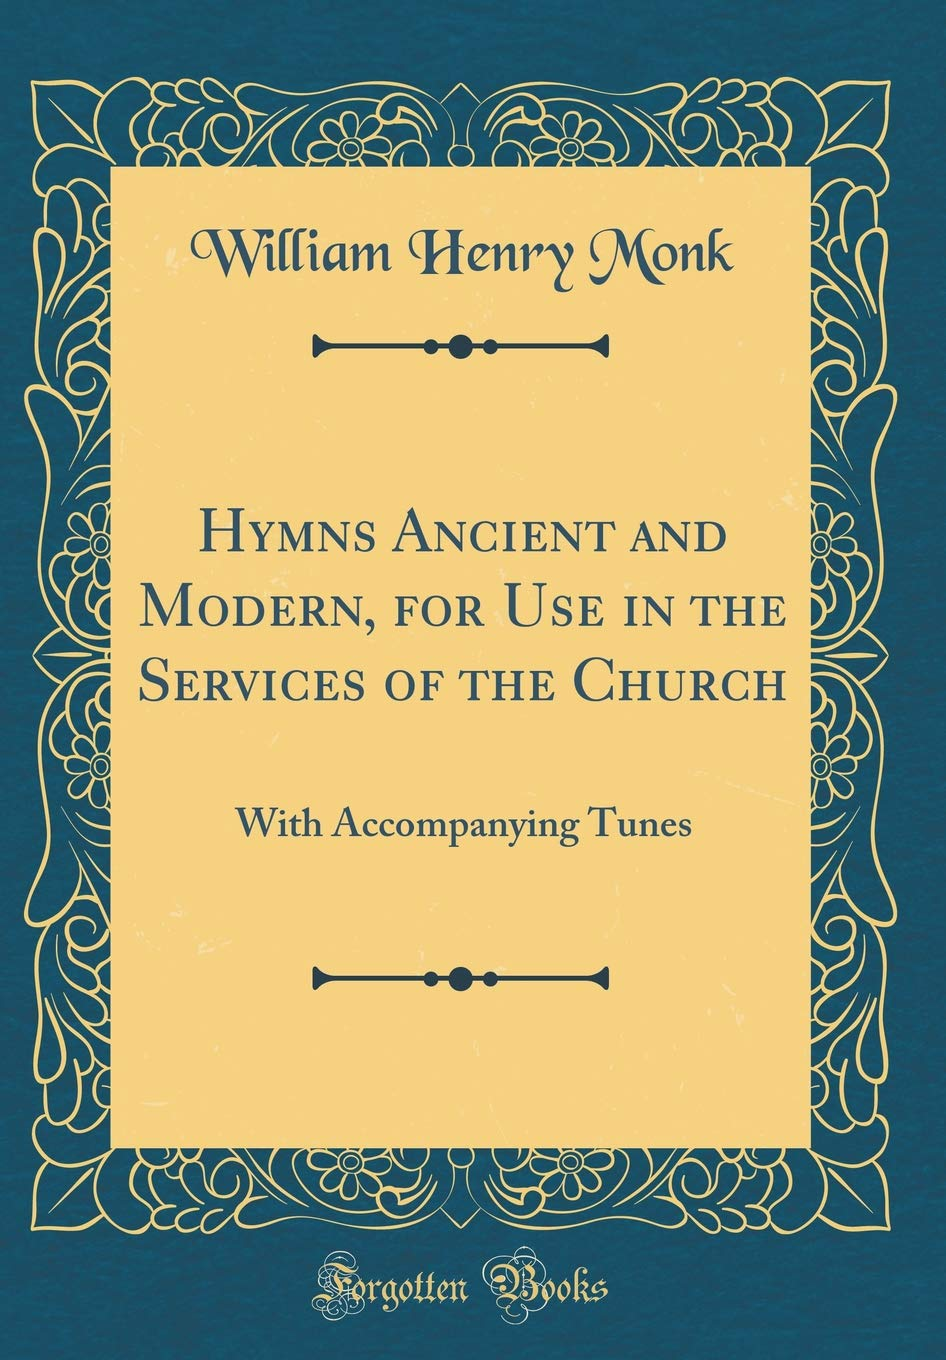 Hymns Ancient and Modern, for Use in the Services of the Church: With  Accompanying Tunes (Classic Reprint): William Henry Monk: 9781396725272:  Amazon.com: ...